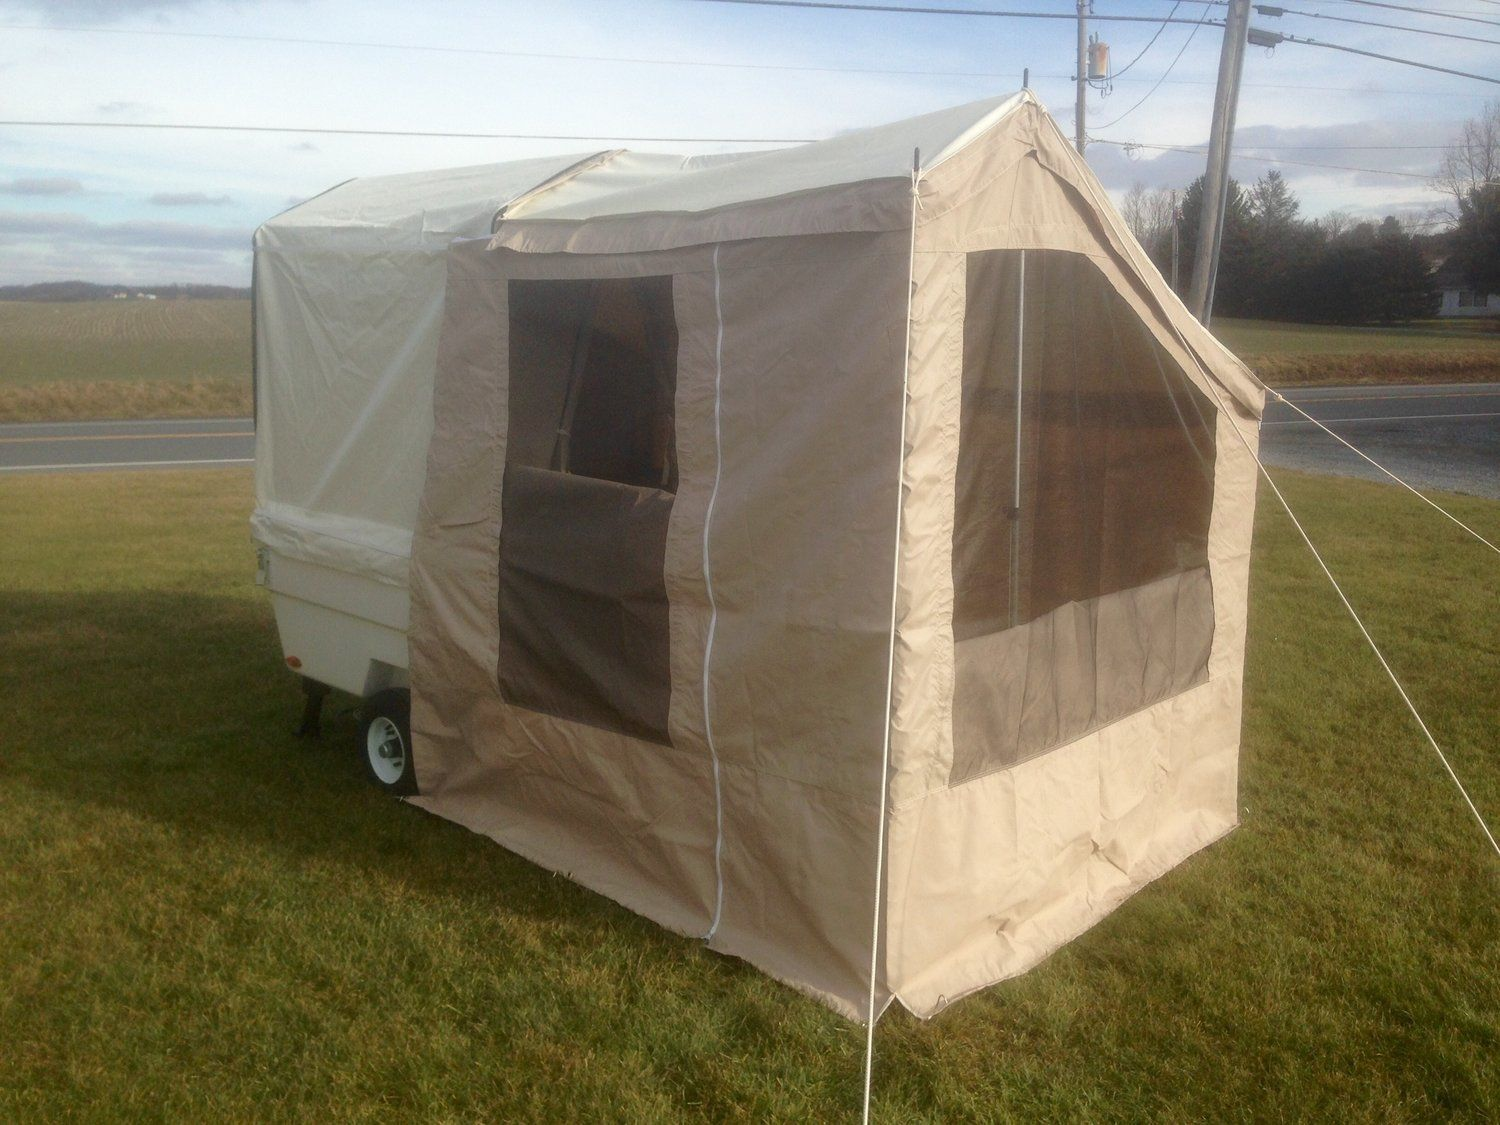 Add-a-Room Awning Sidewalls for Mini Mate Camper | Add a ...